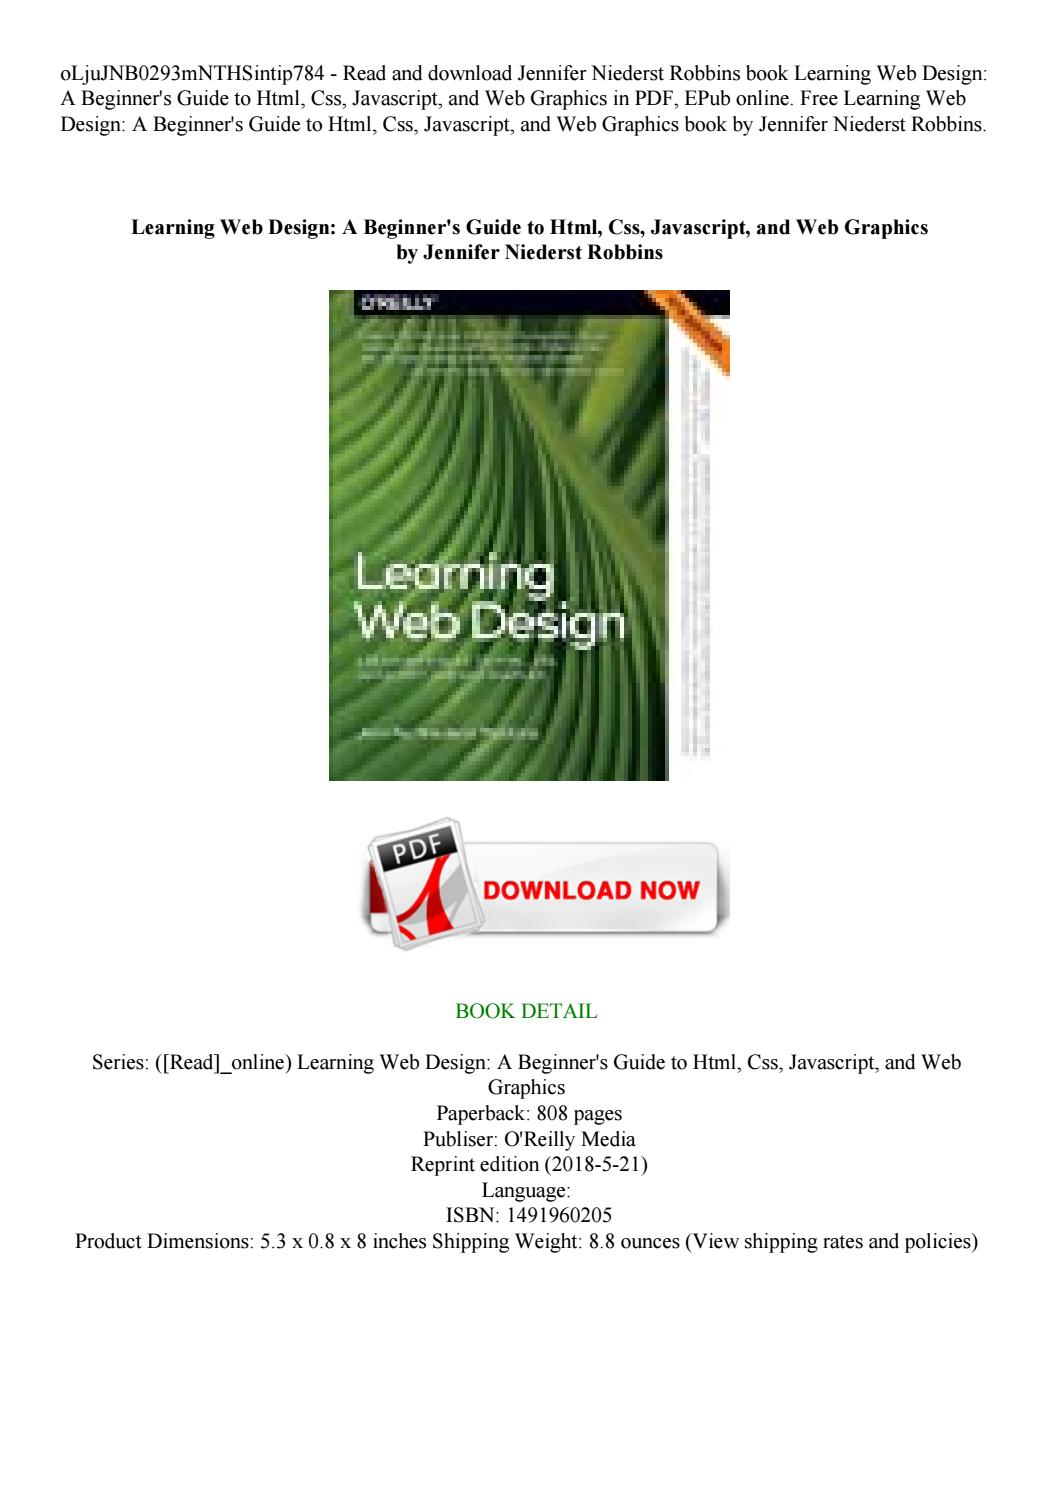 Read Online Learning Web Design A Beginner S Guide To Html Css Javascript And Web Graphics By Y5rtfhg68tufhcvb Issuu